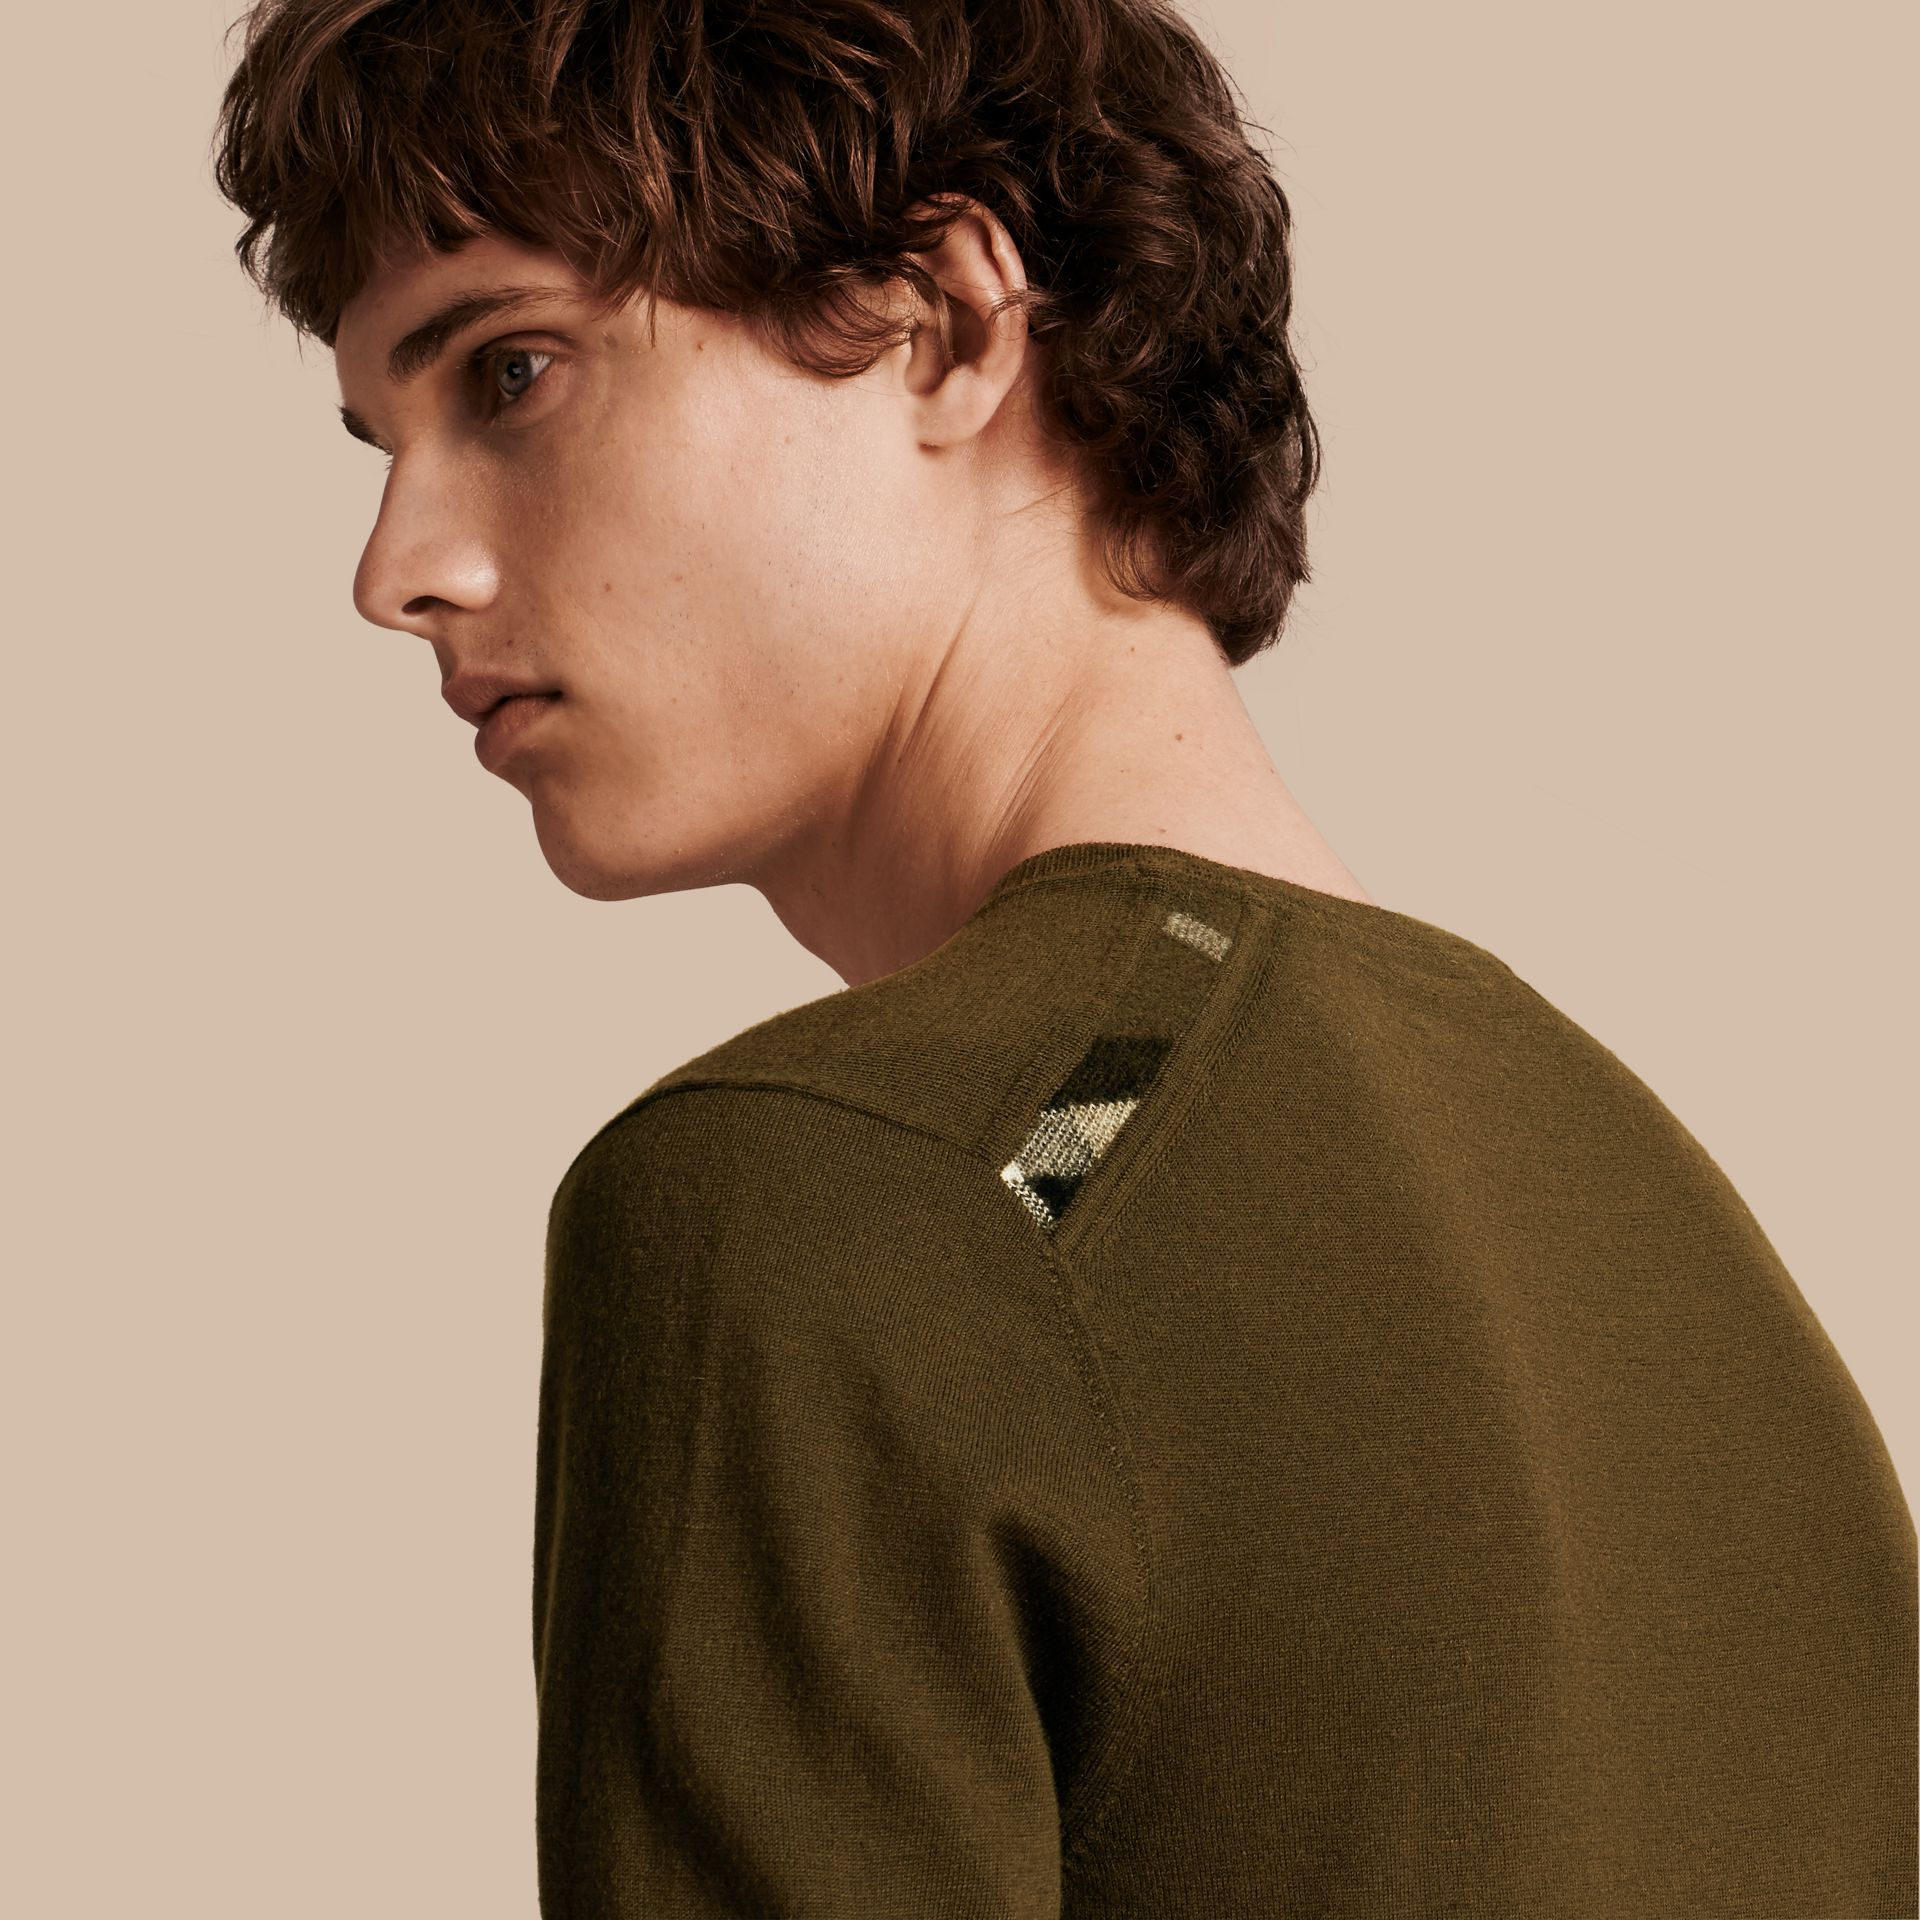 Military olive Lightweight Crew Neck Cashmere Sweater with Check Trim Military Olive - gallery image 1